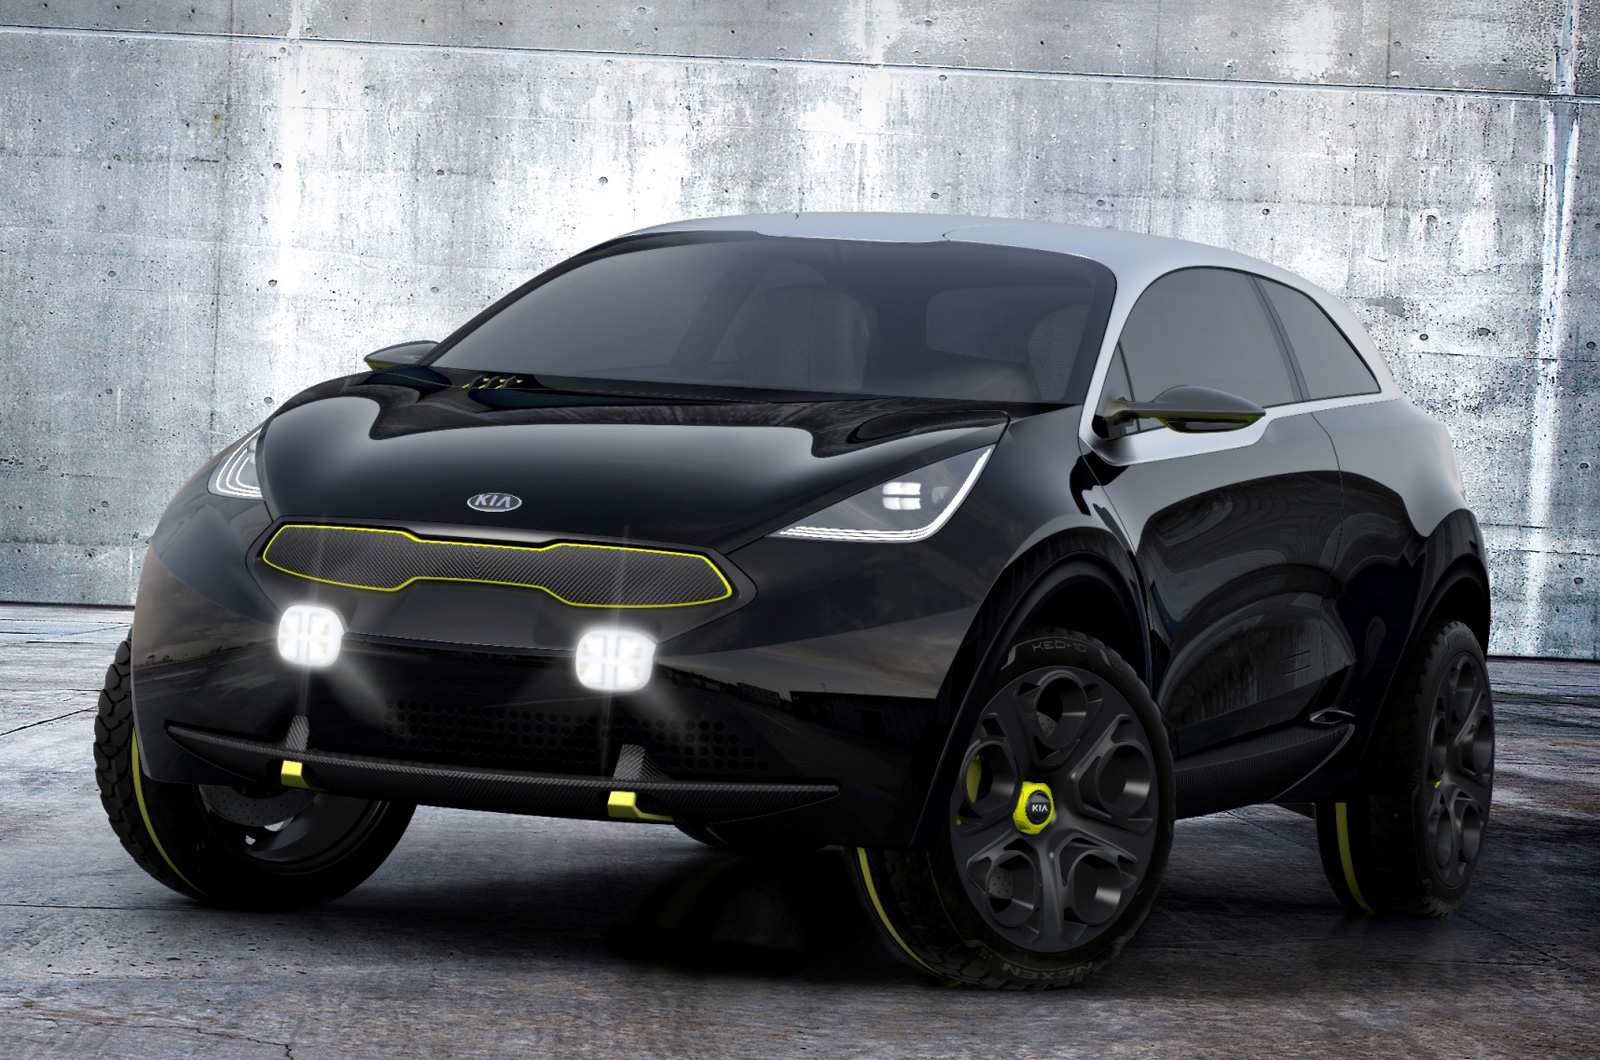 Exclusive: Kia Working on a Dedicated Hybrid Small SUV